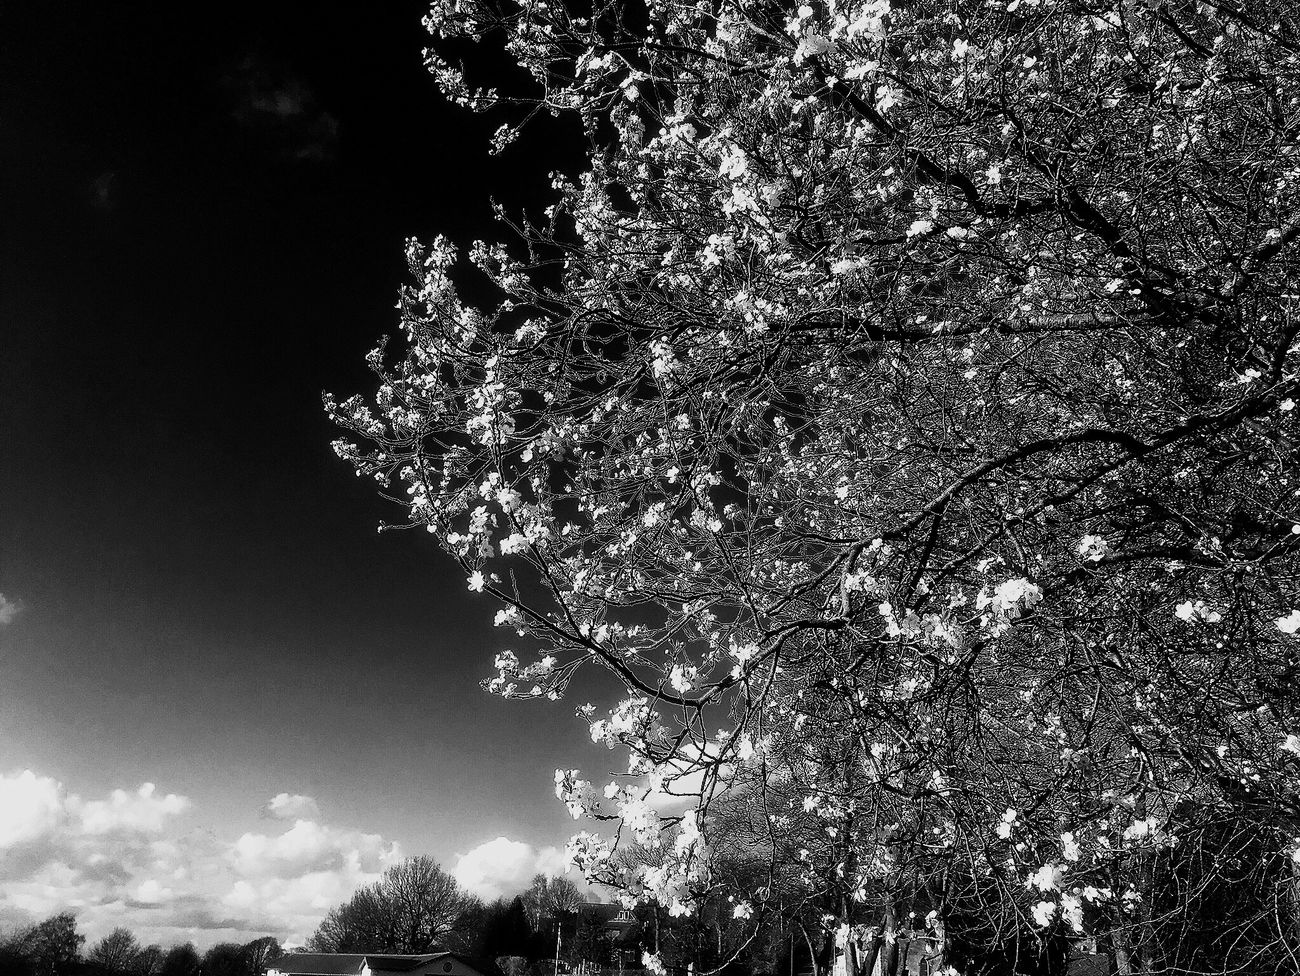 Early blossom showing on a tree at Little Eaton park, Derbyshire Bw Documentary Photography